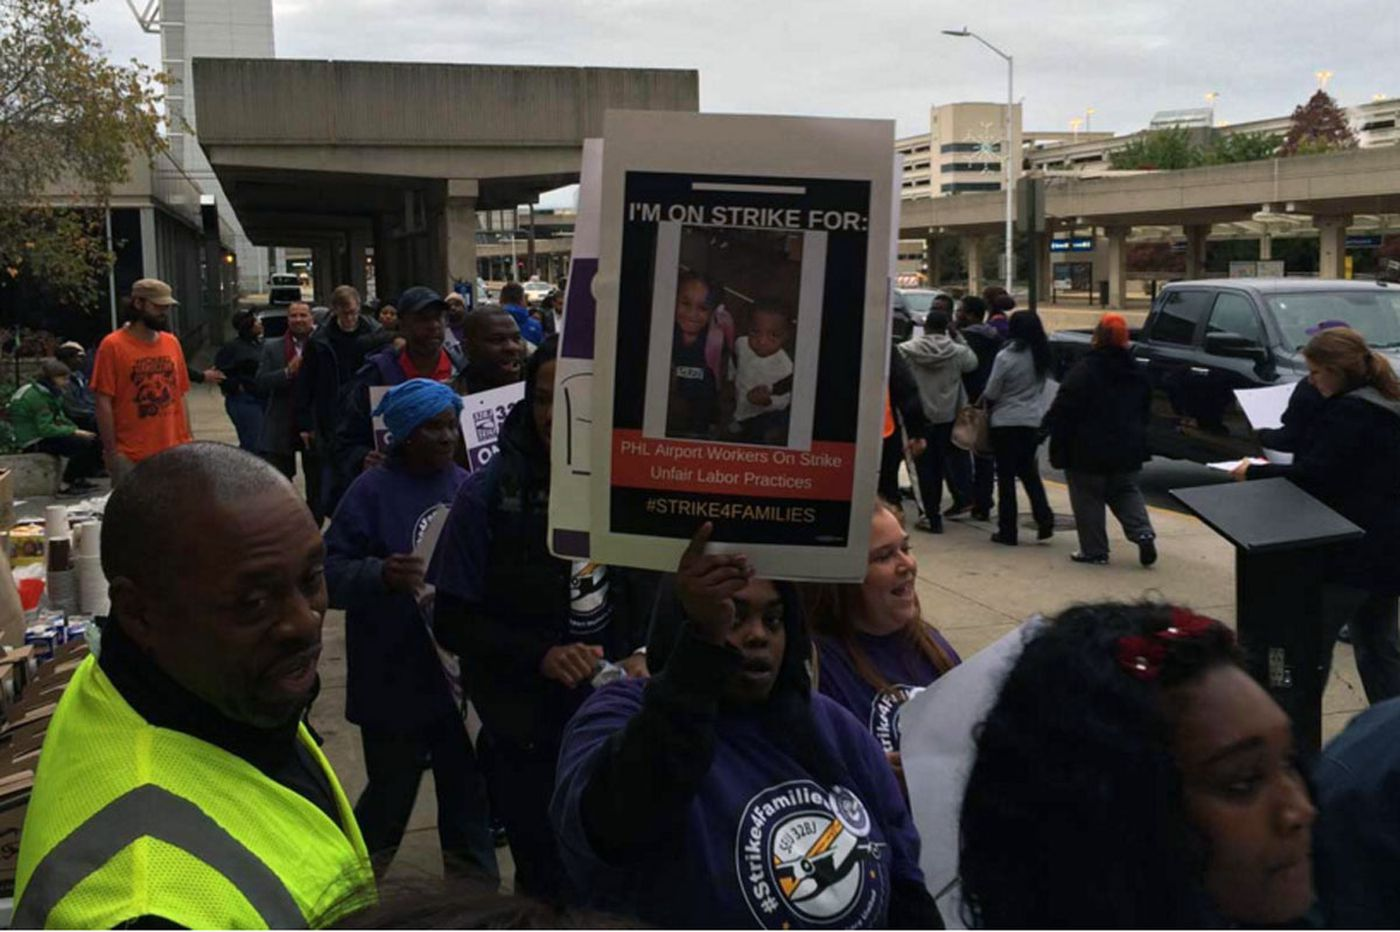 Airport workers protest for better pay, work rules